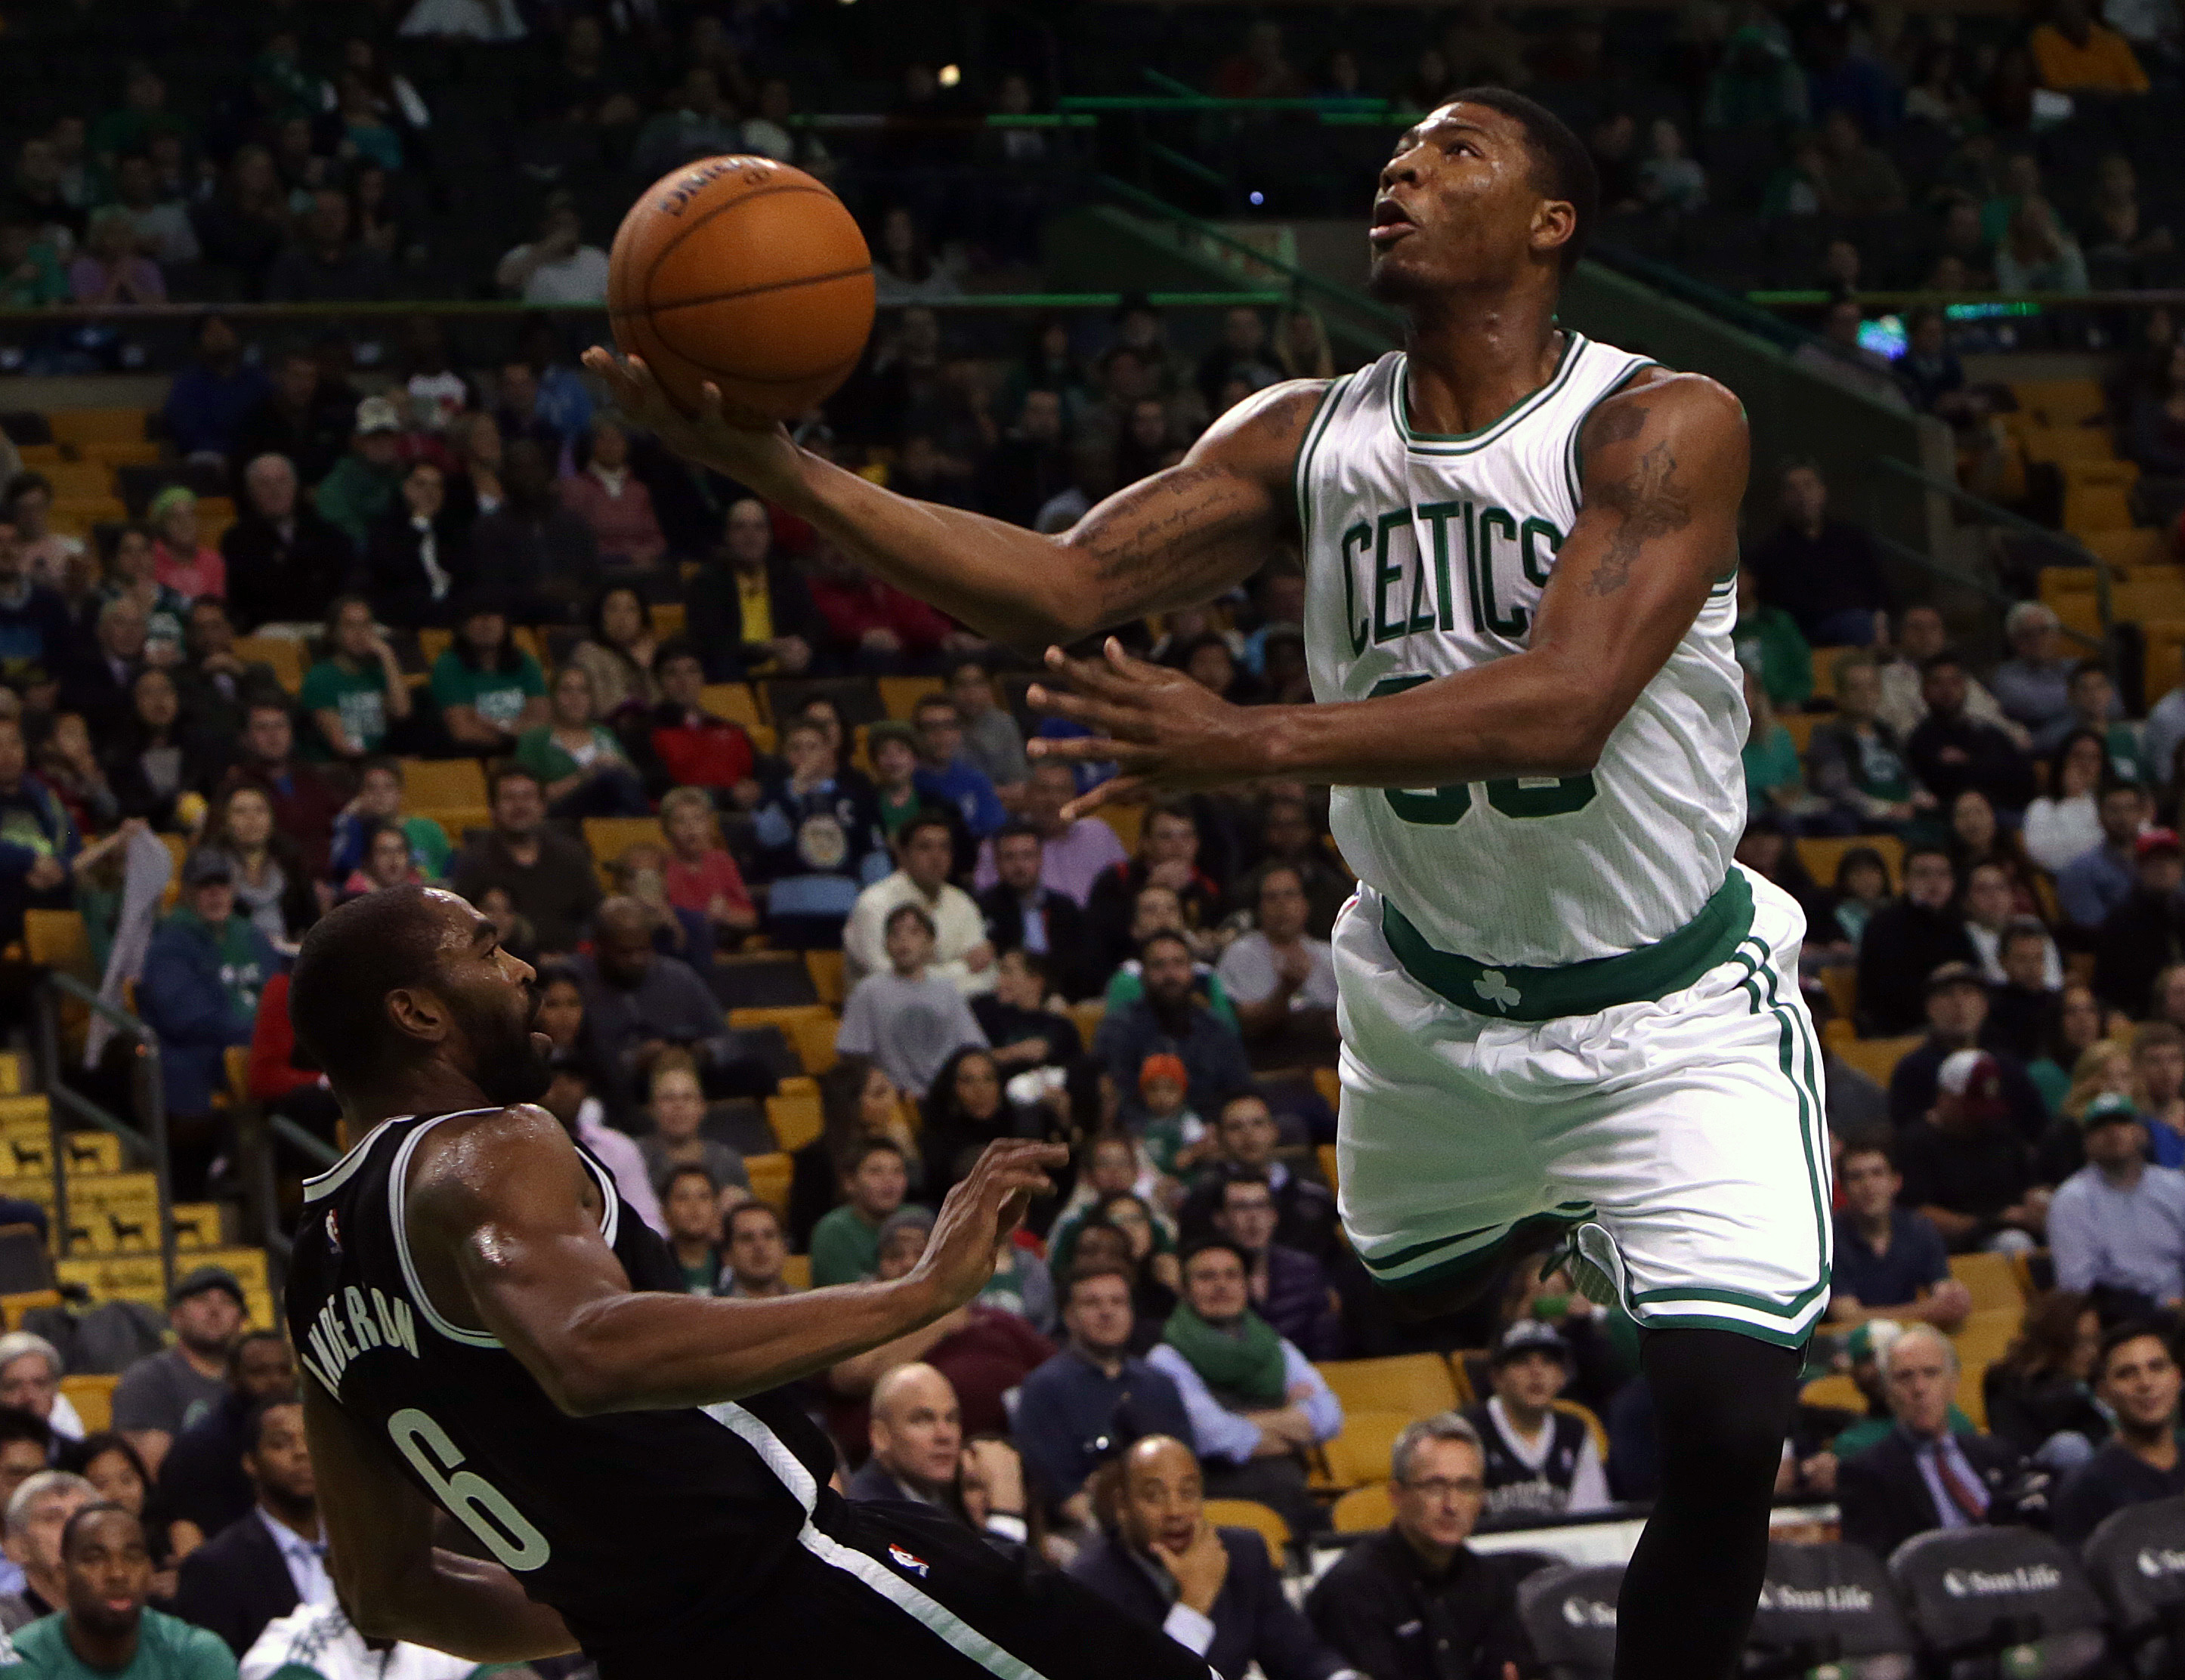 Three Things We Learned From the Celtics' 100-86 Win Over the N…